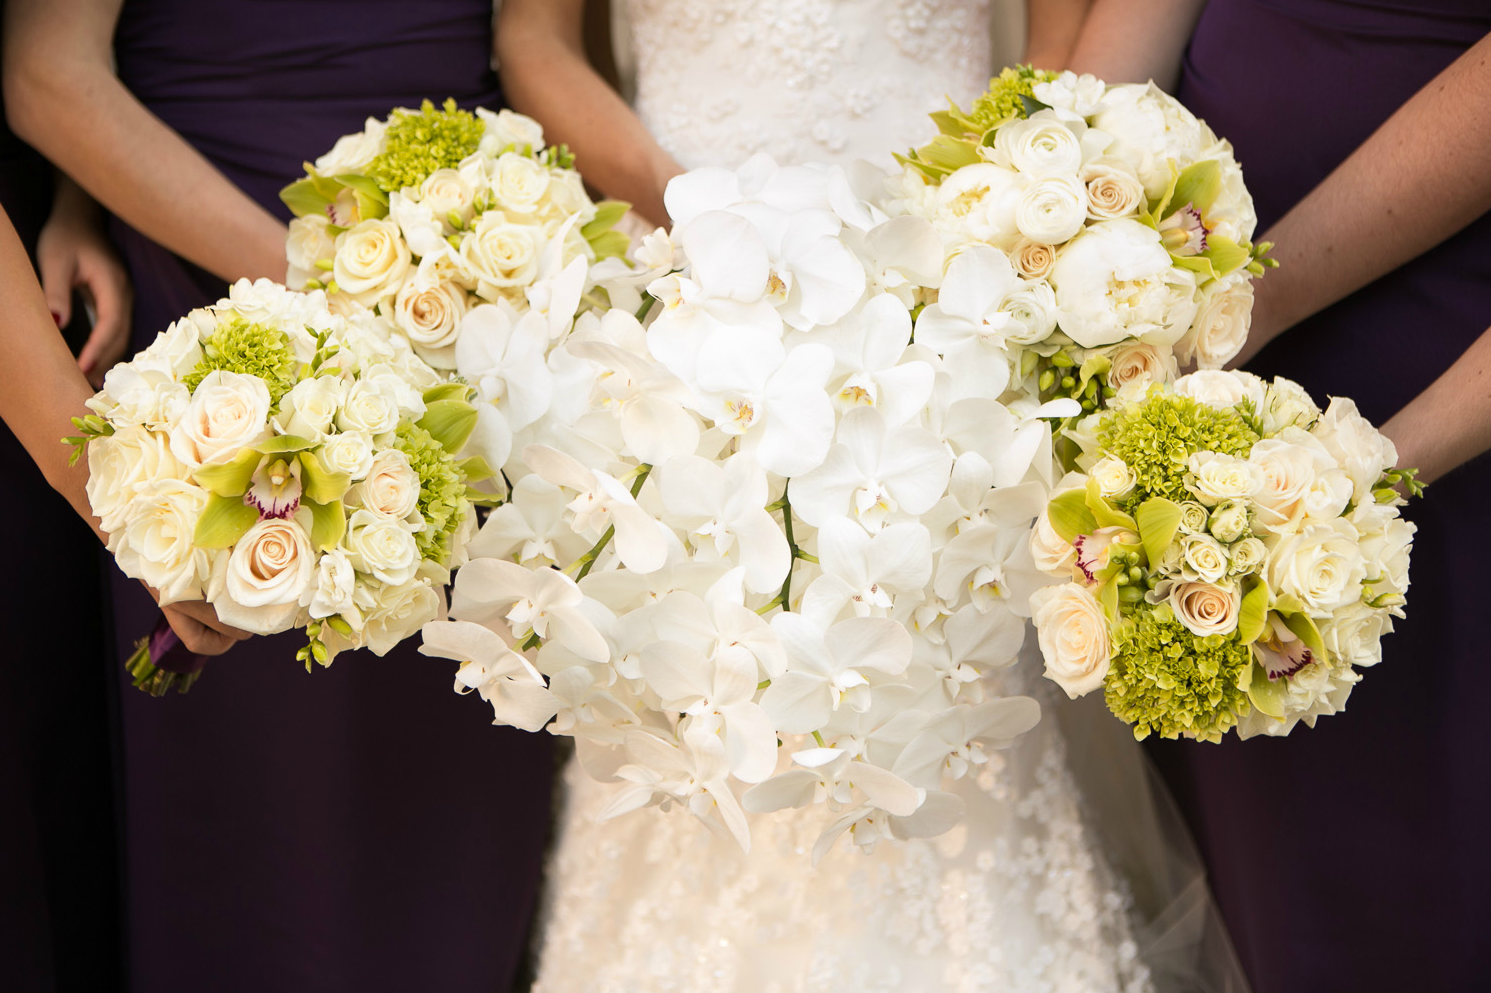 The most beautiful wedding bouquet